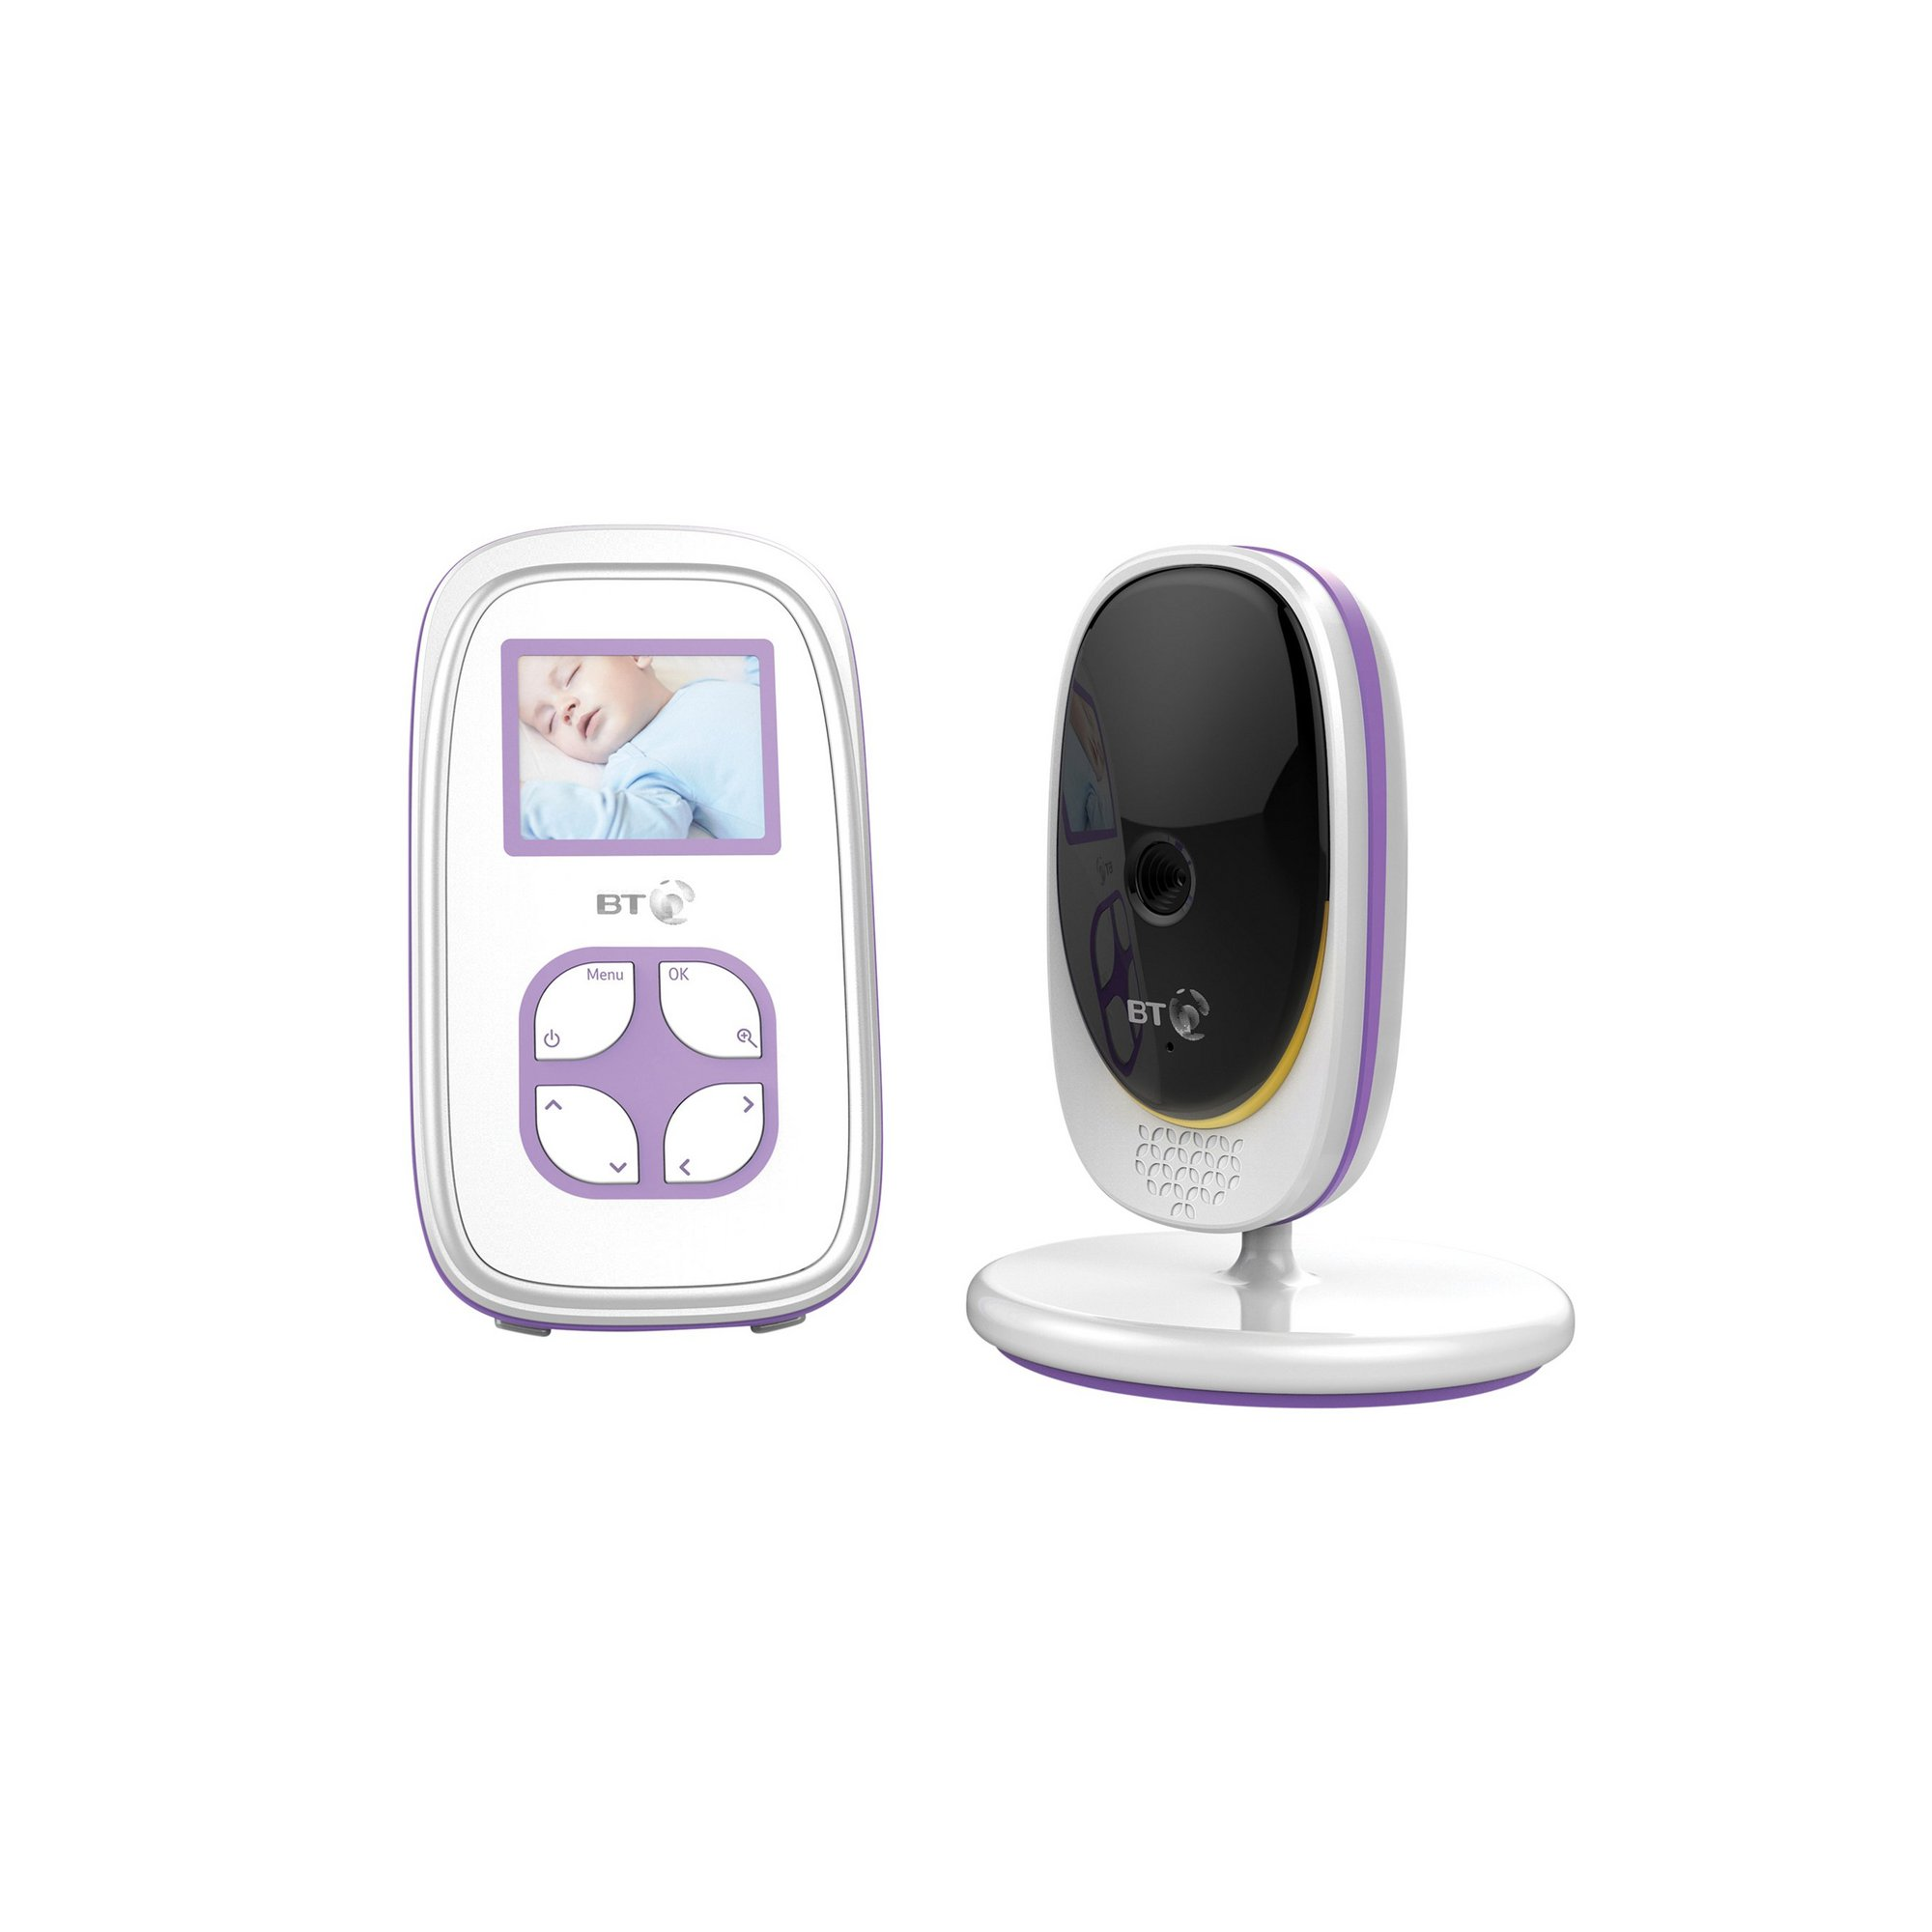 Image of BT Video Baby Monitor 2000